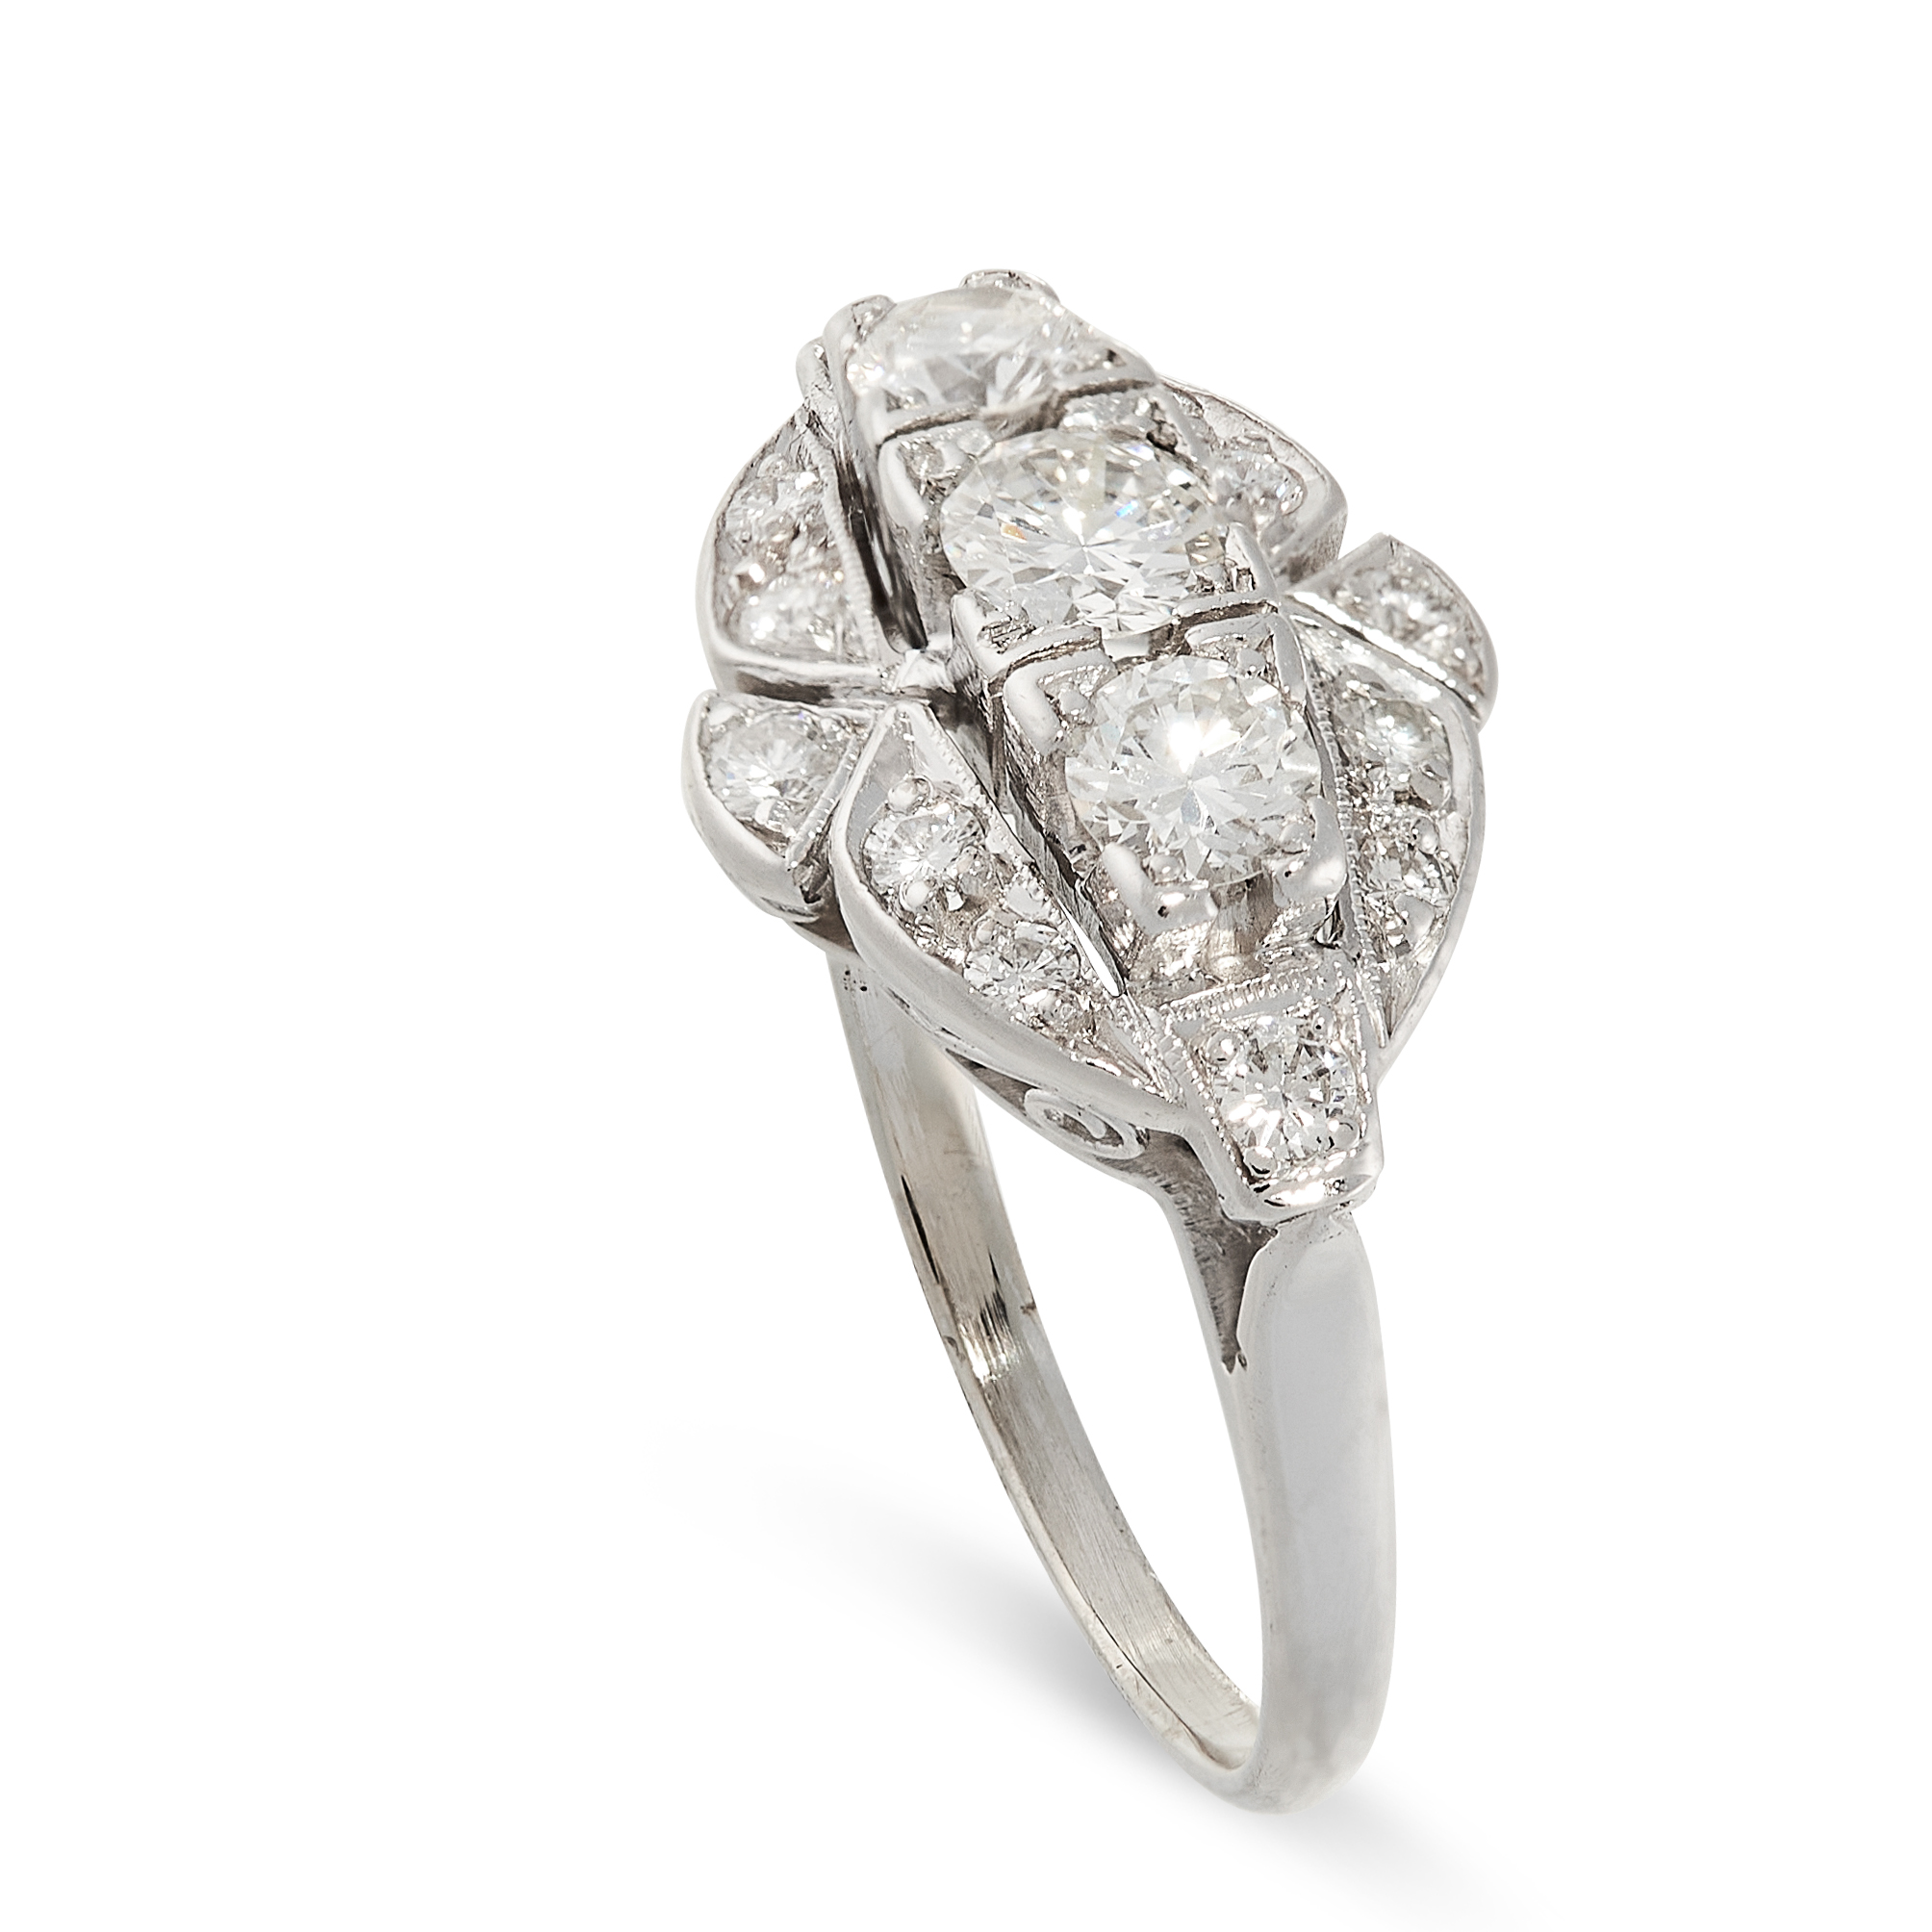 A DIAMOND DRESS RING the navette shaped face set with a trio of principal round cut diamonds - Image 2 of 2